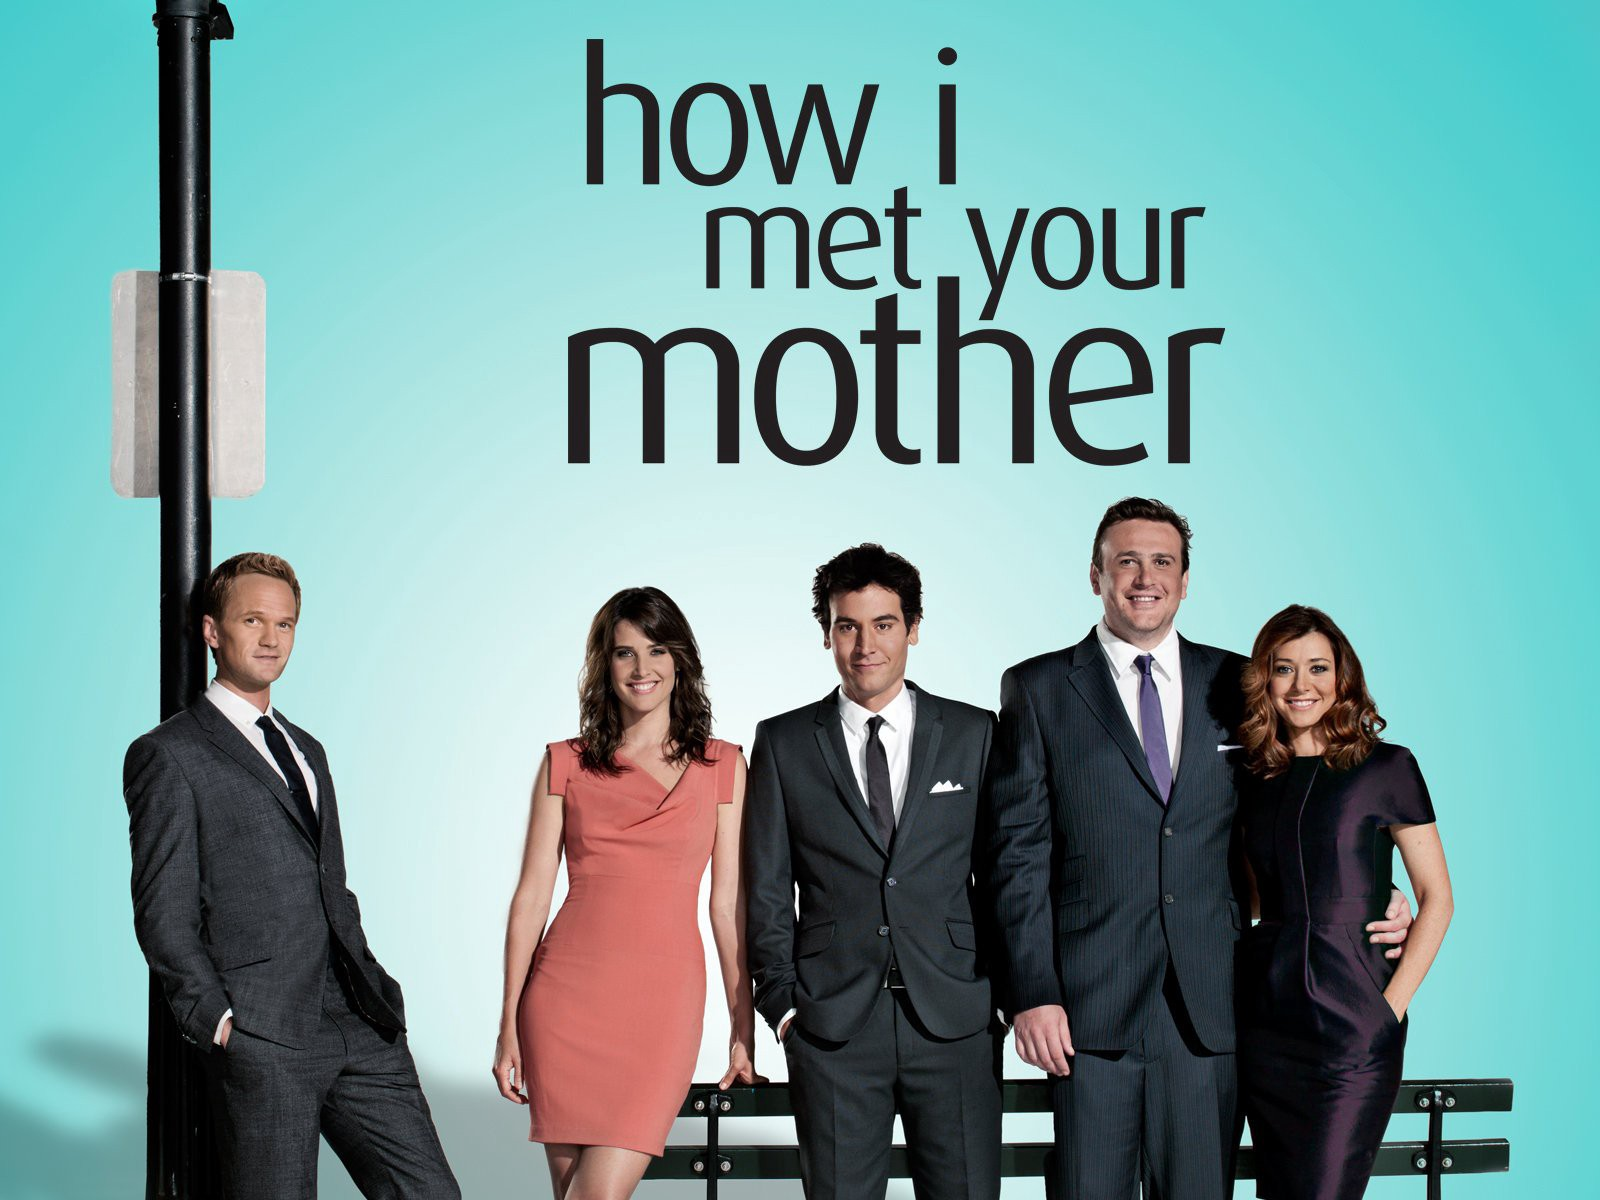 Character Arc Analysis: How I Met Your Mother - Gregory Cala - Medium